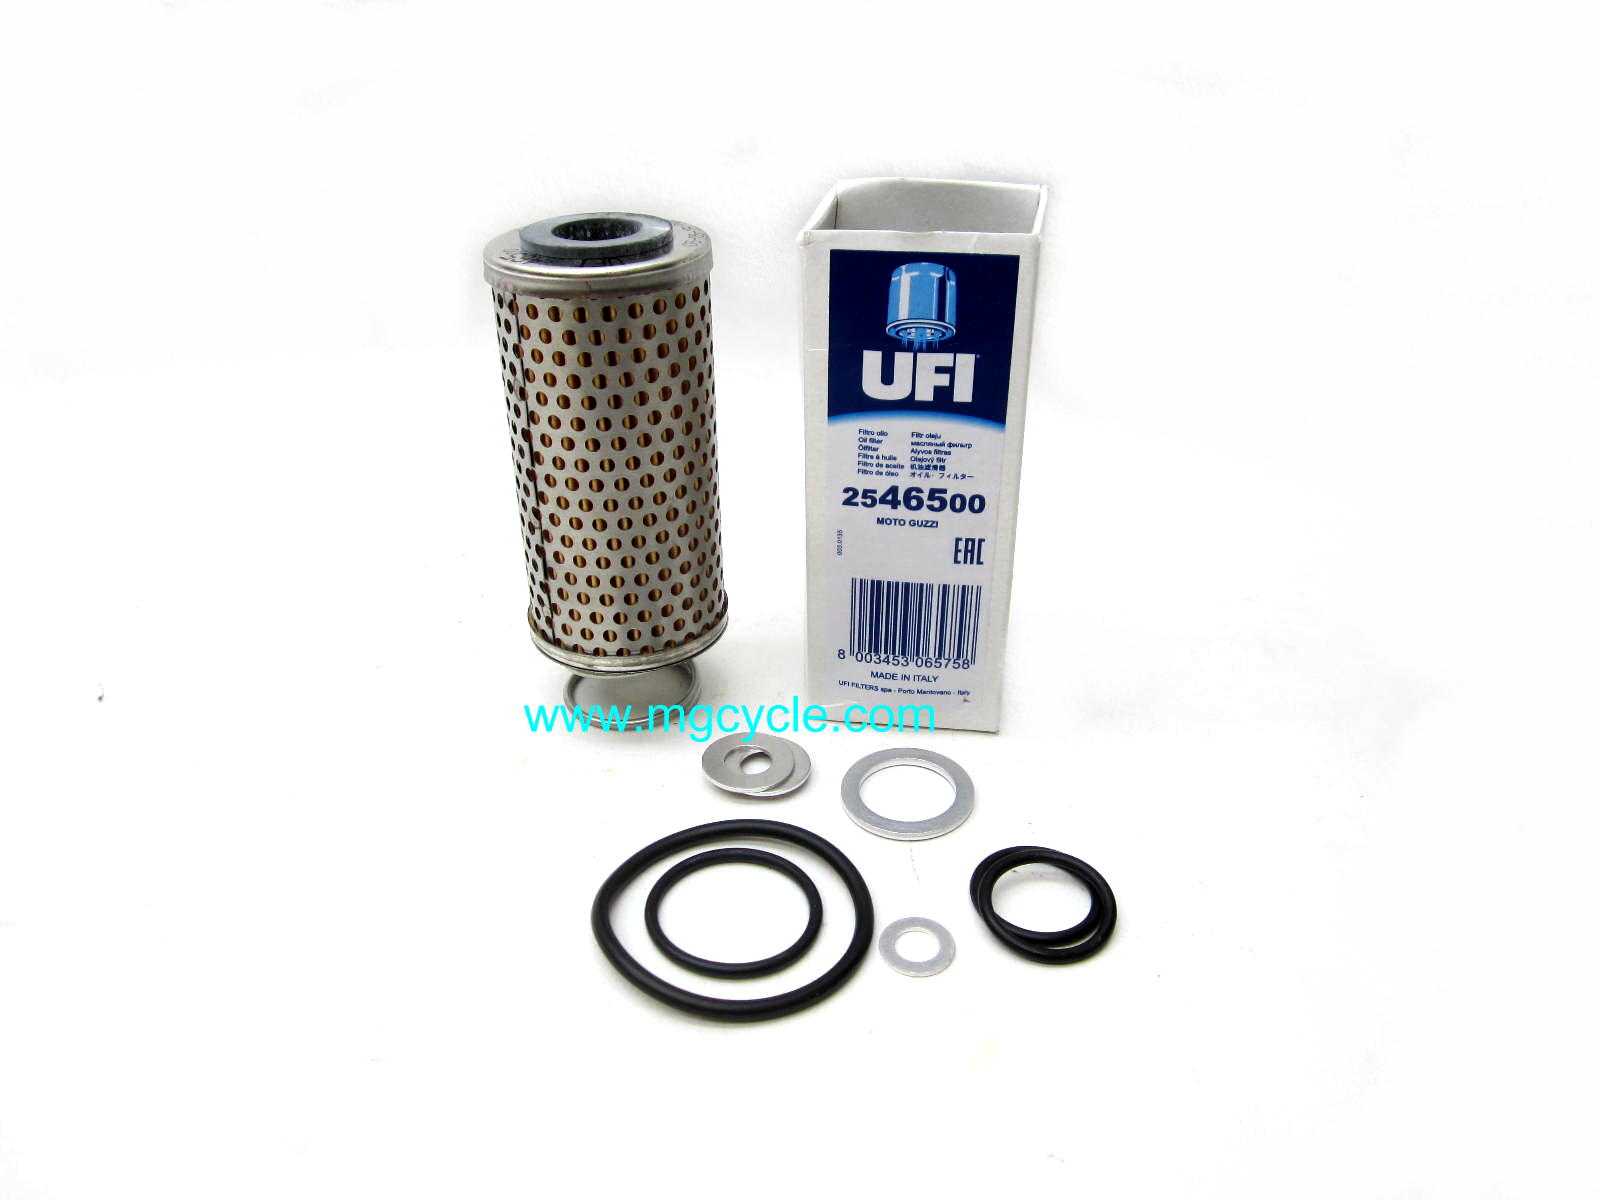 Oil change kit for small twins V35, V50, V65